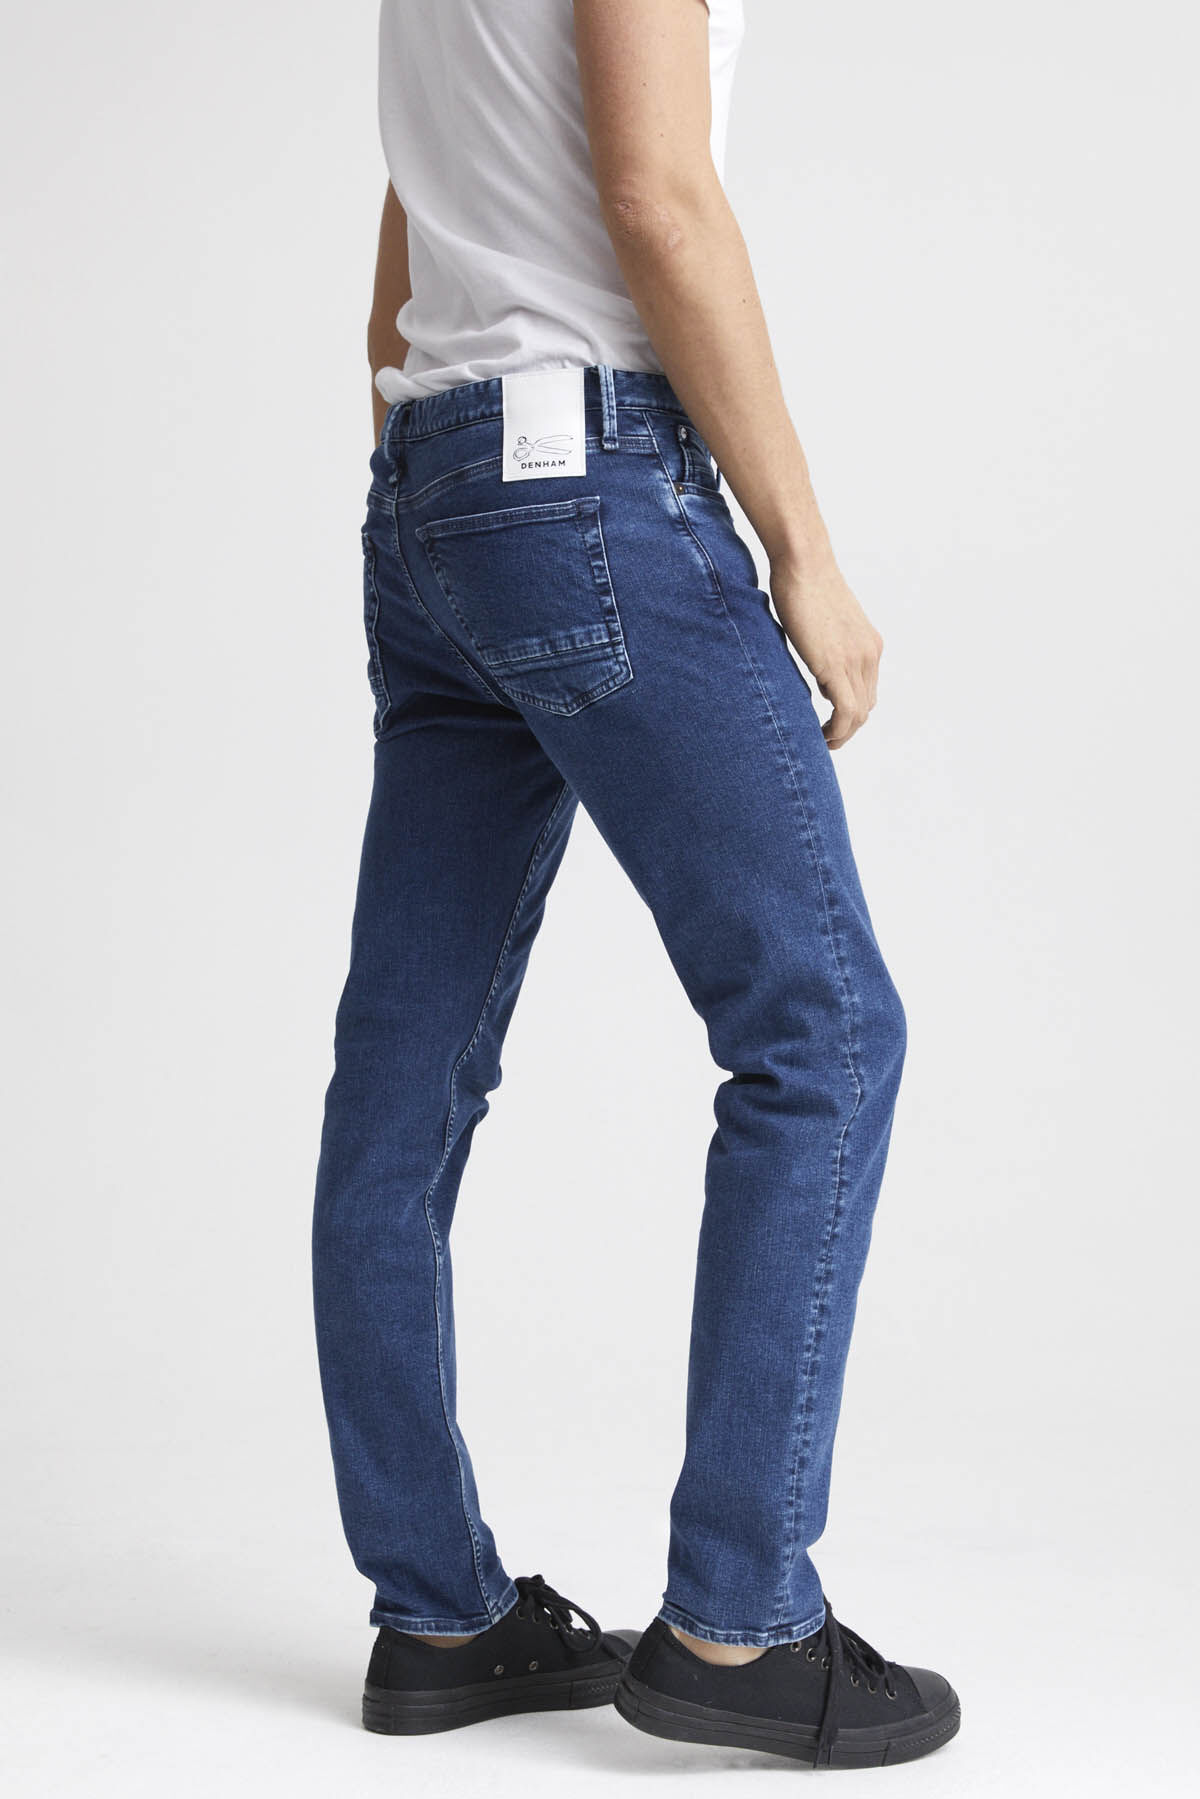 RAZOR Indigo Dipped Denim - Slim Fit